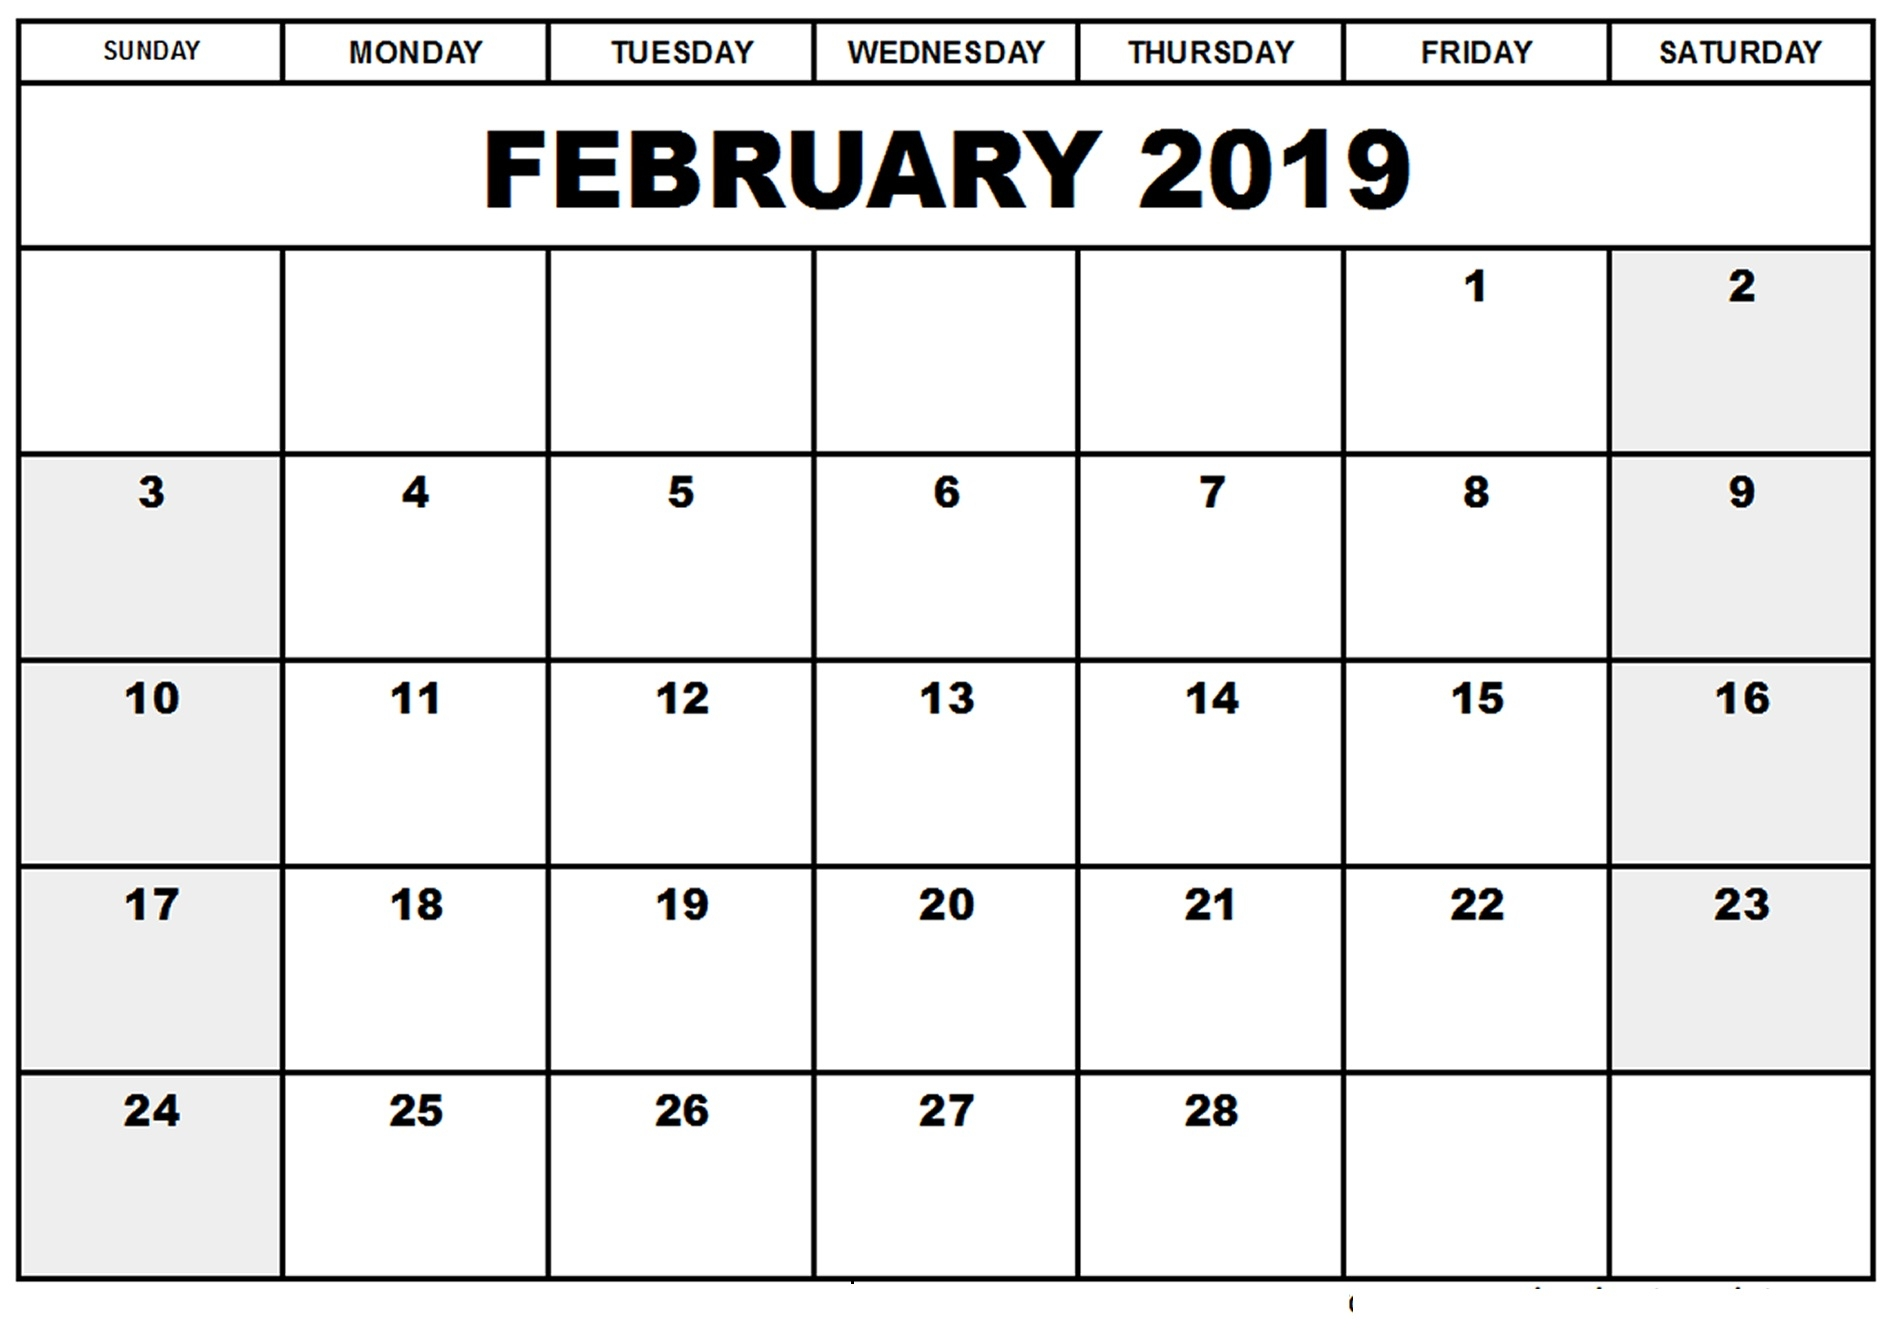 online february 2019 calendar editable free online calendars::February 2019 Calendar Fillable